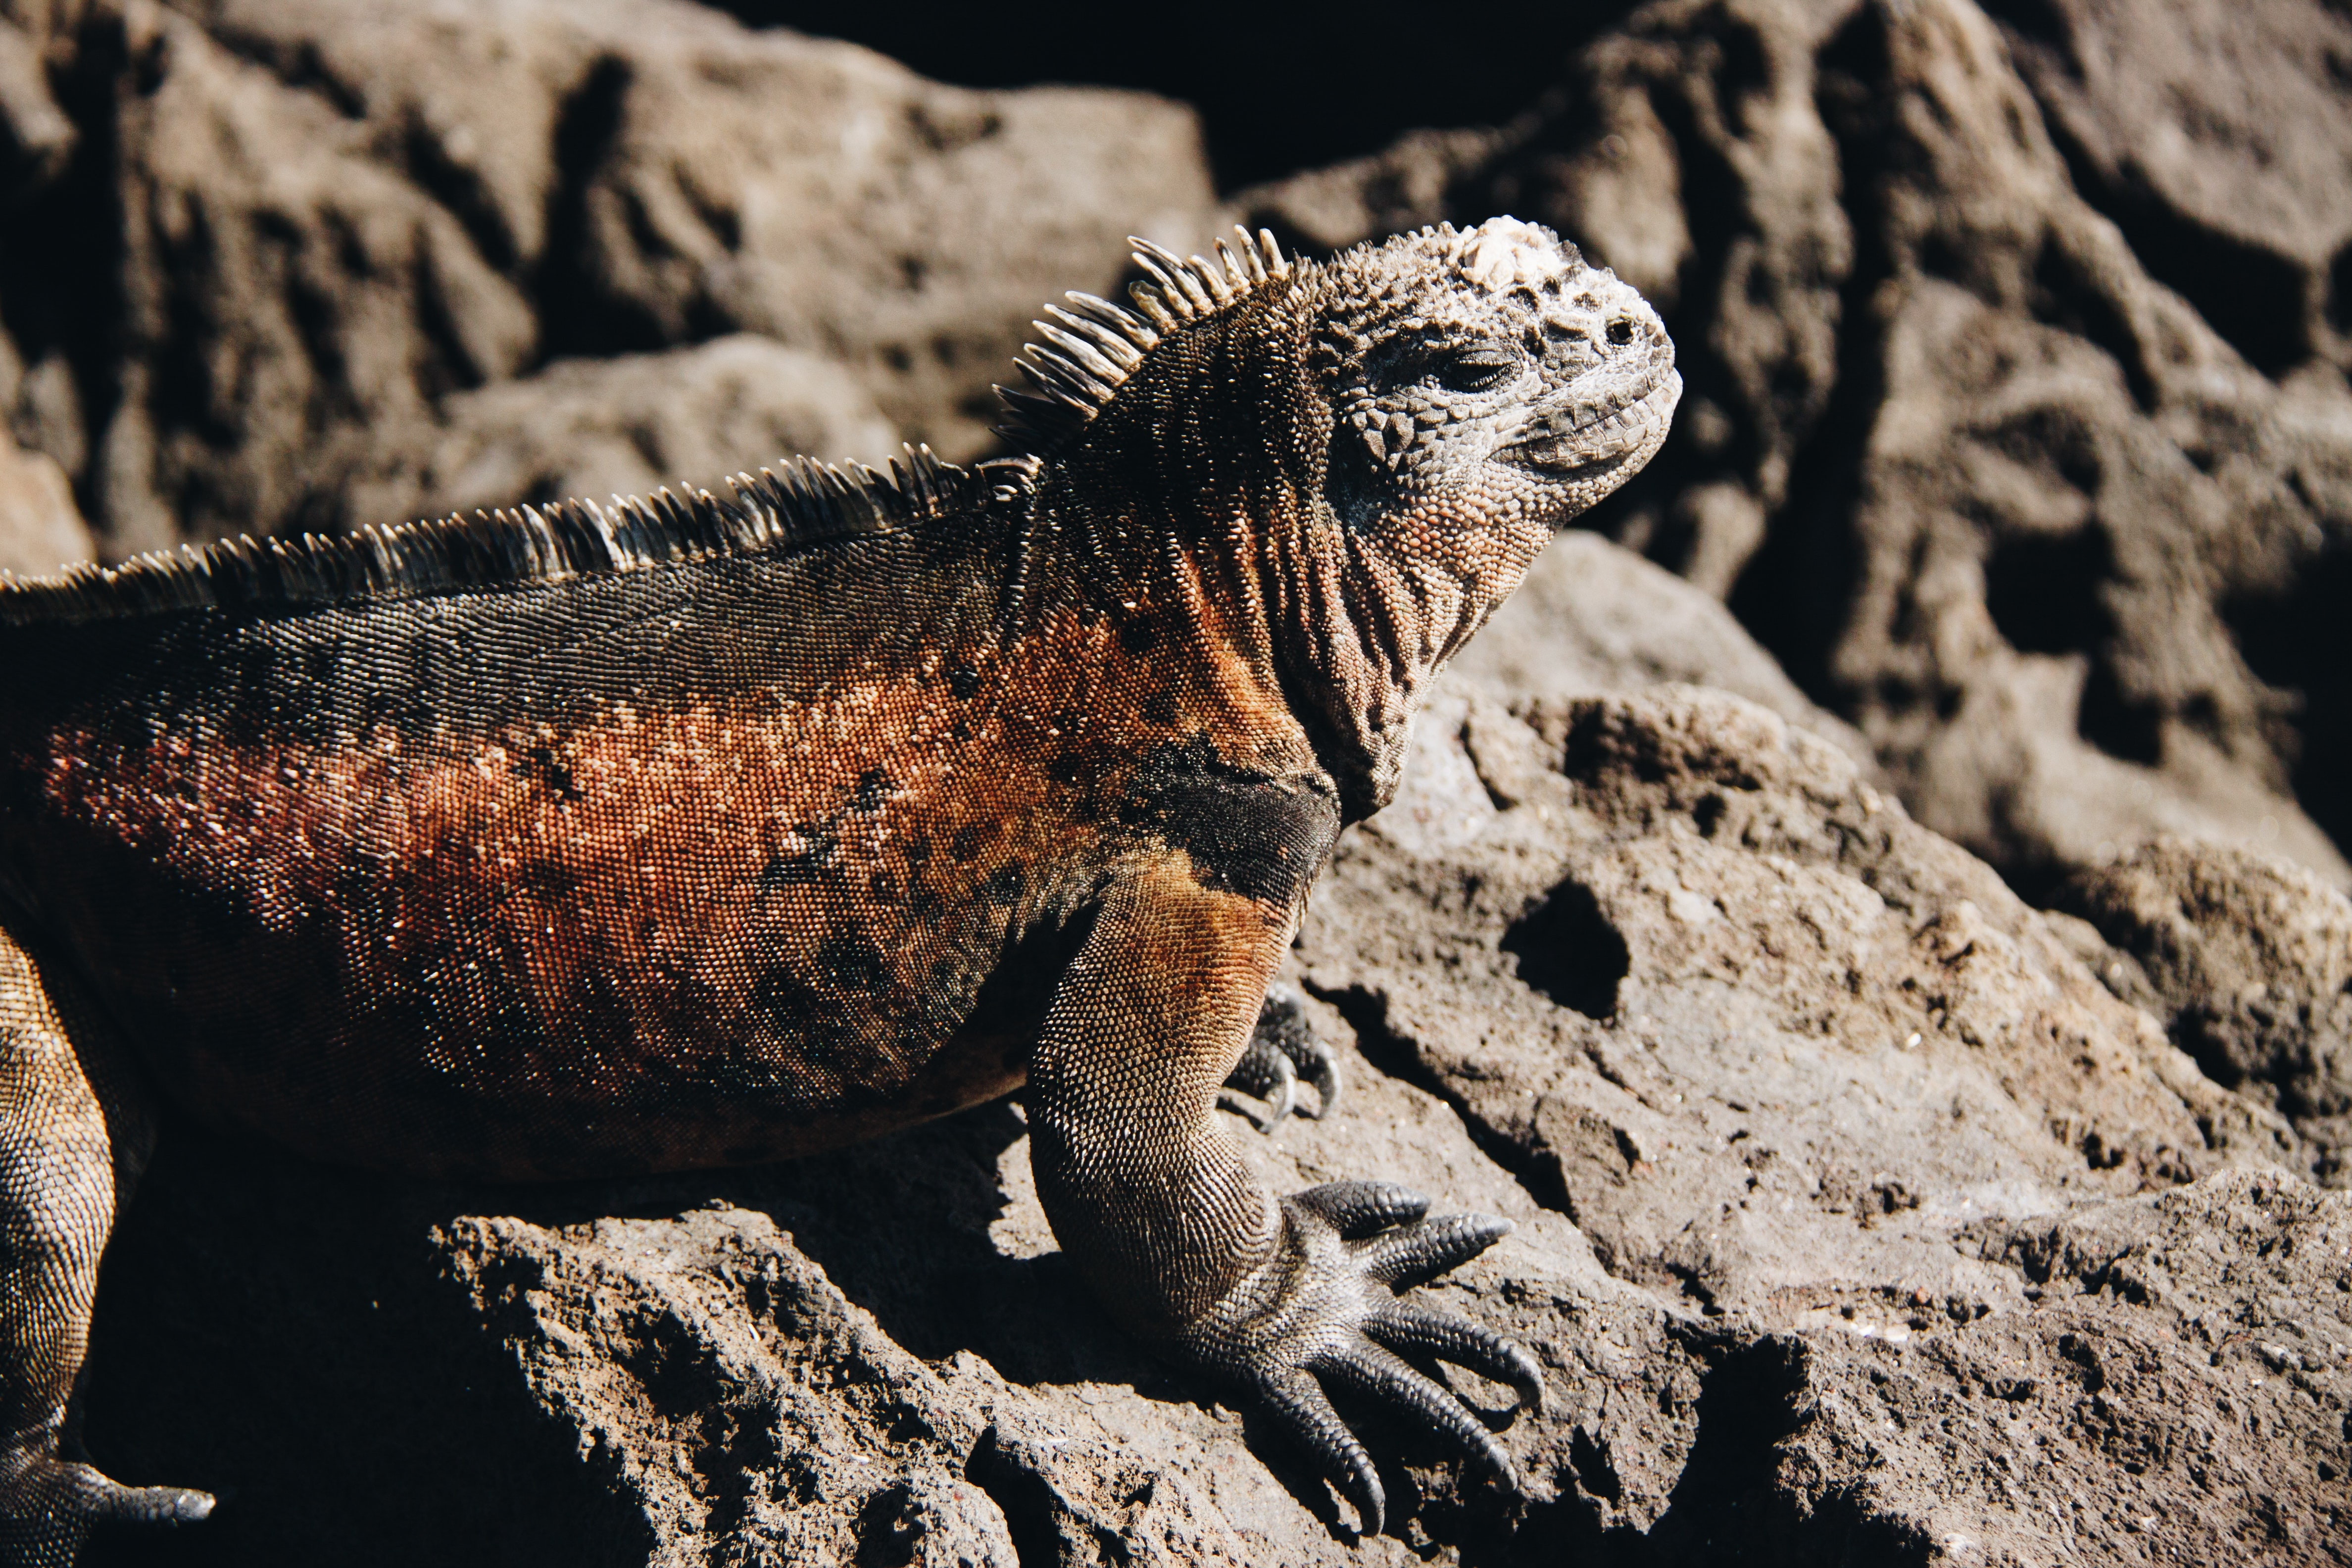 brown and black bearded dragon on rock formation